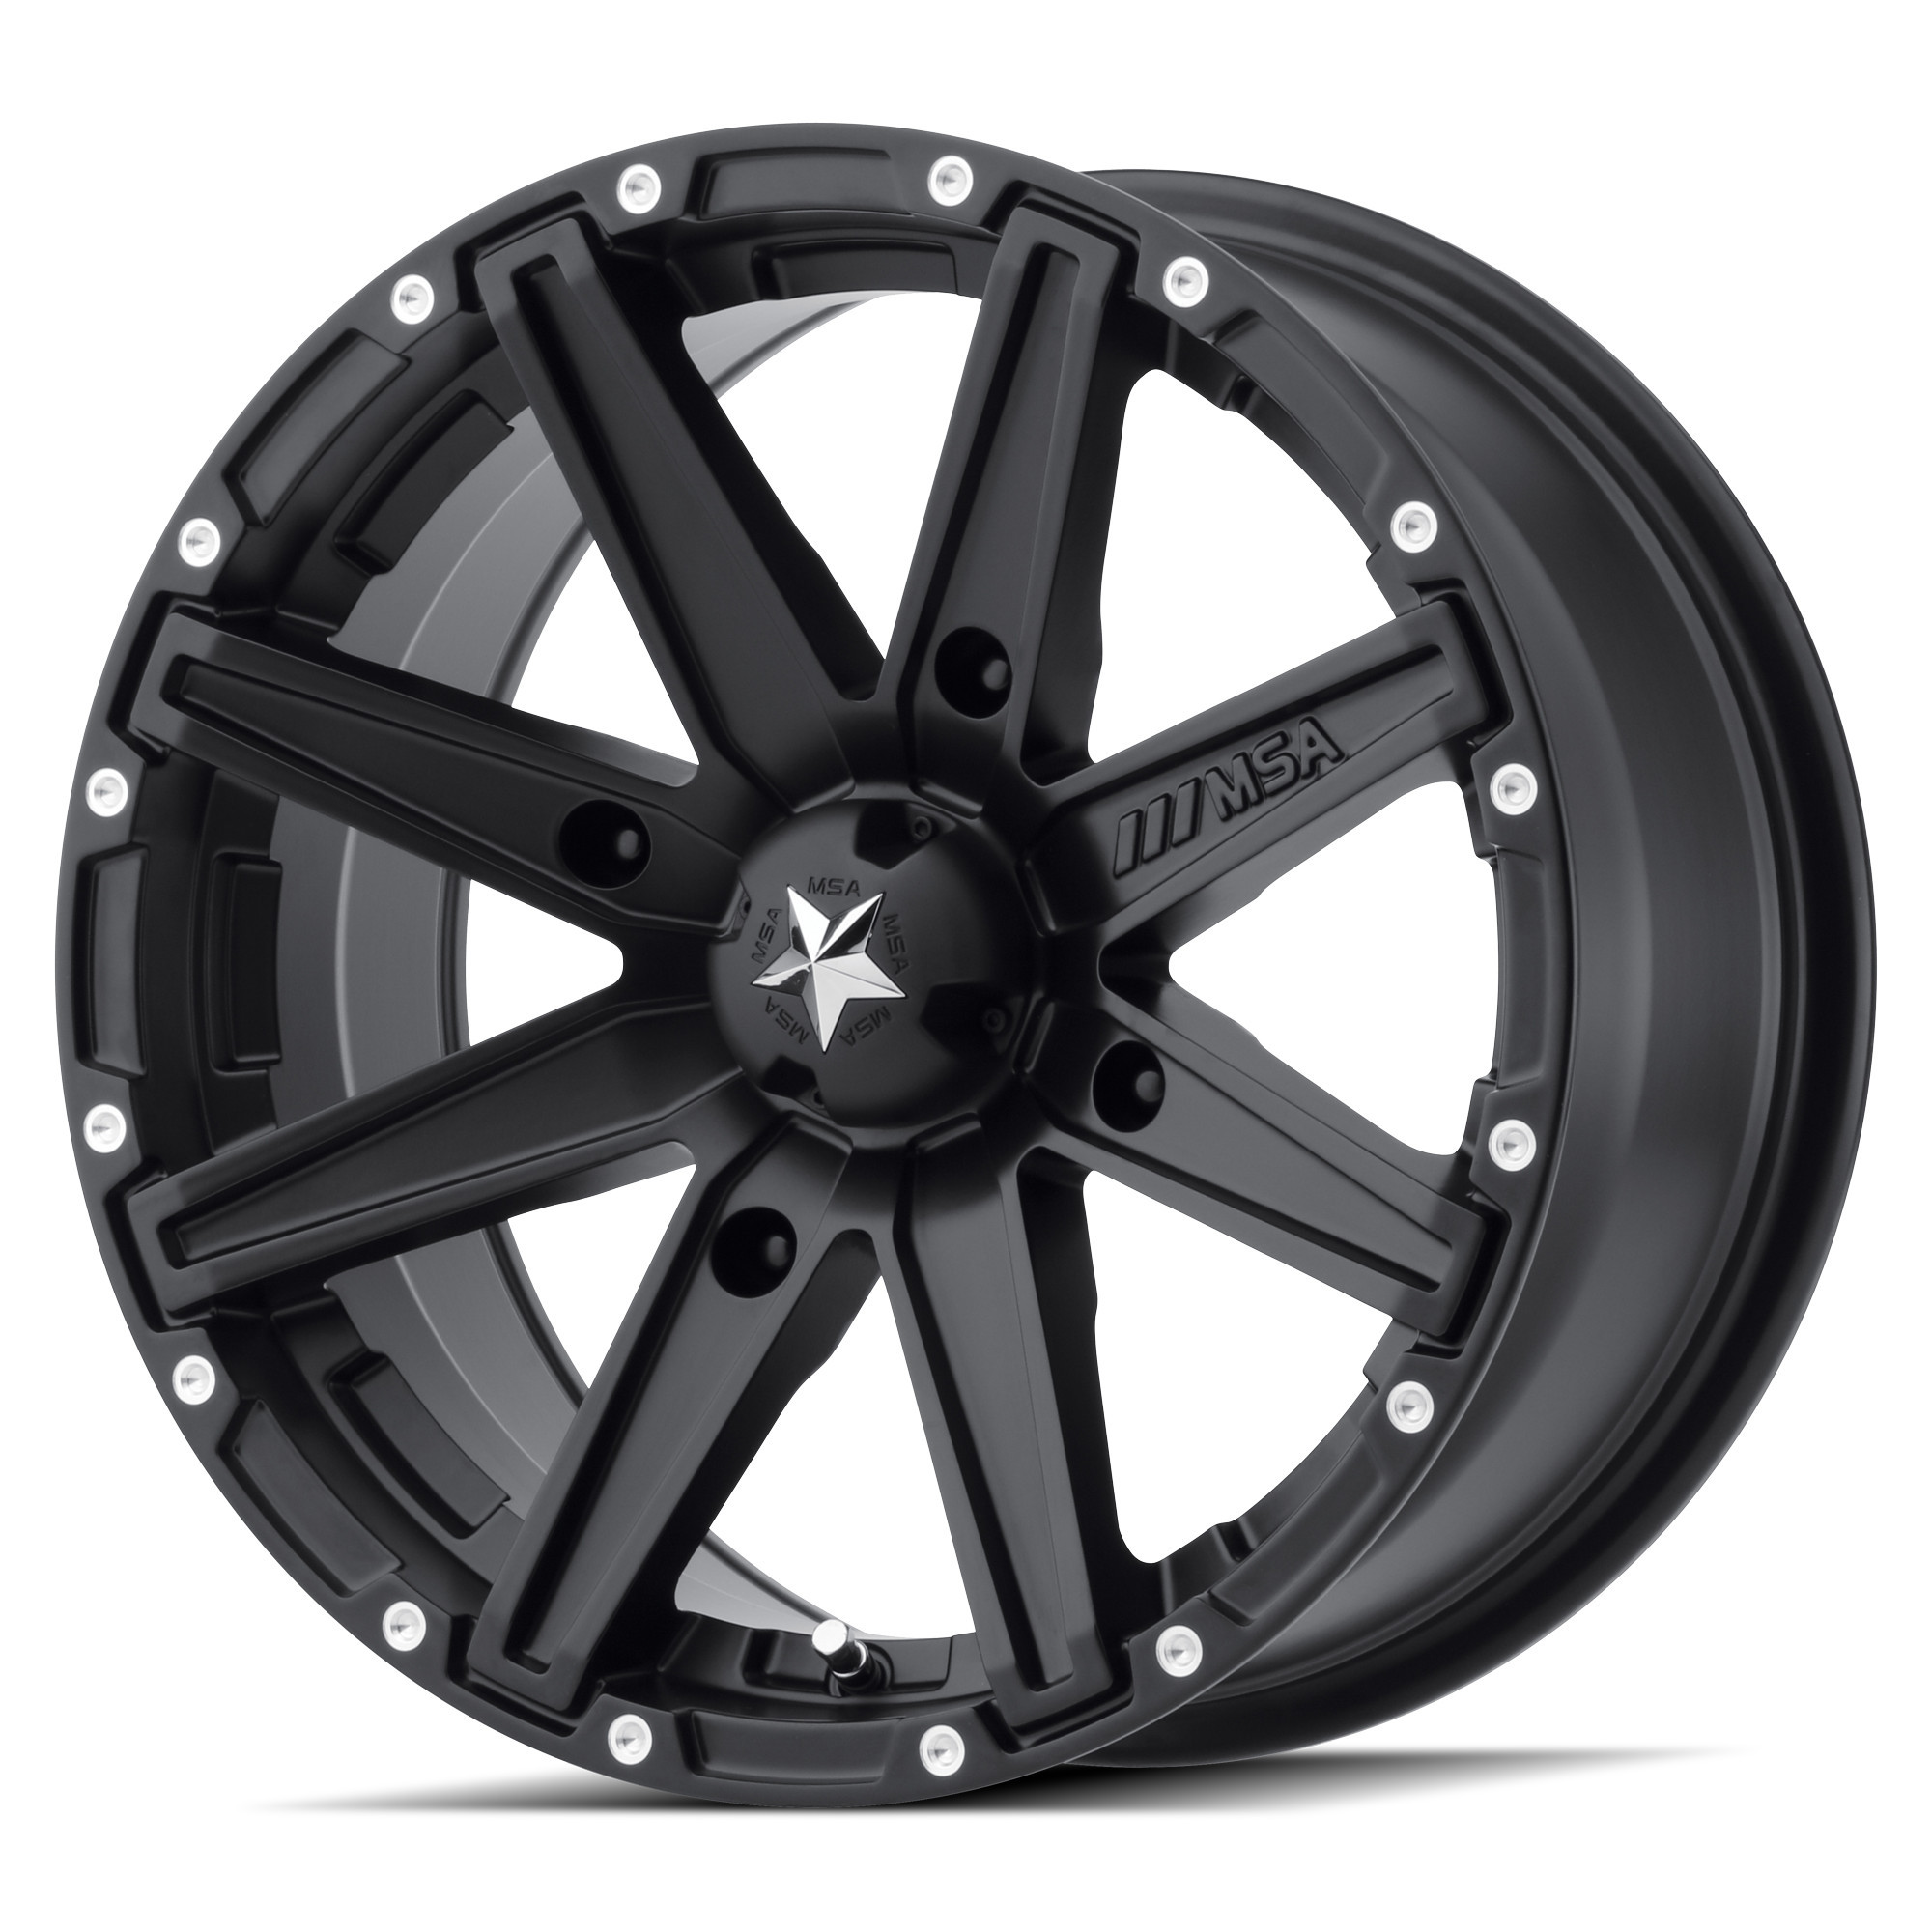 MSA 16x7 4x156 M33 Clutch Satin Black vannesarja Polaris